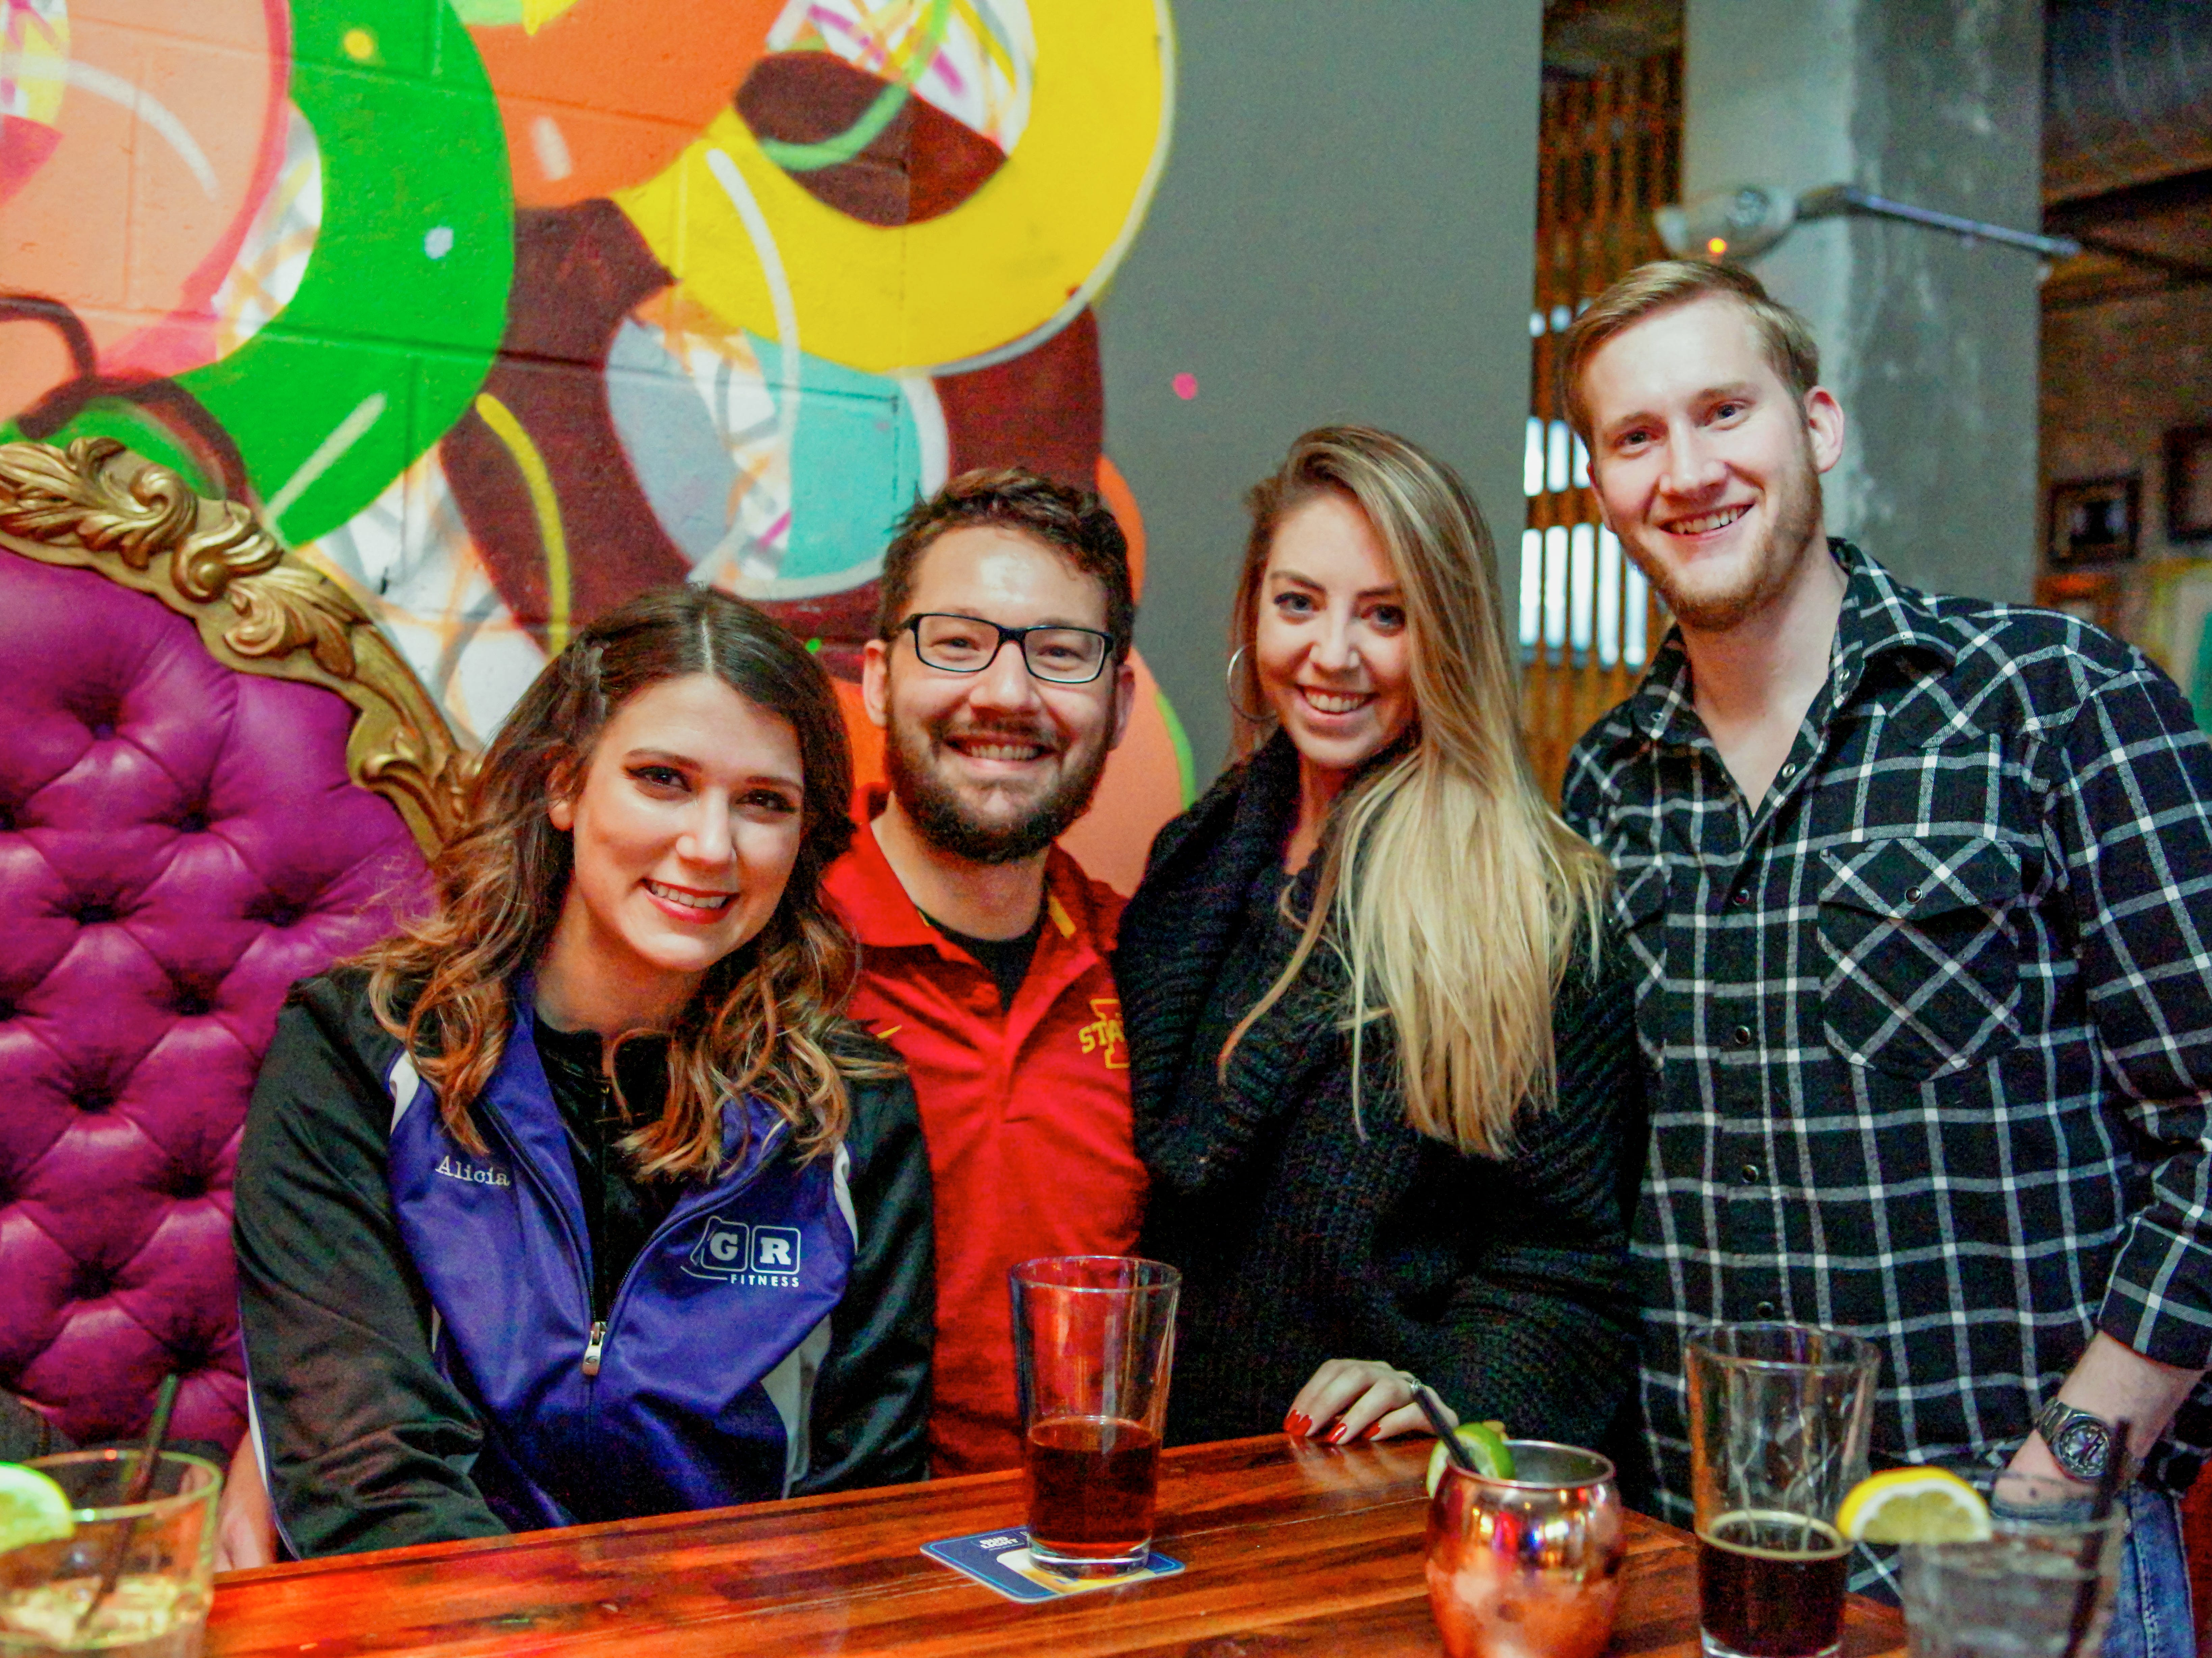 Alicia Bellville, 29, Paul Dudley, 28, Bayley Maurt, 29, and Orin McMillin, 28, all of Des Moines, having a fun time, Friday, December 28th, at 300 Craft and Rooftop.